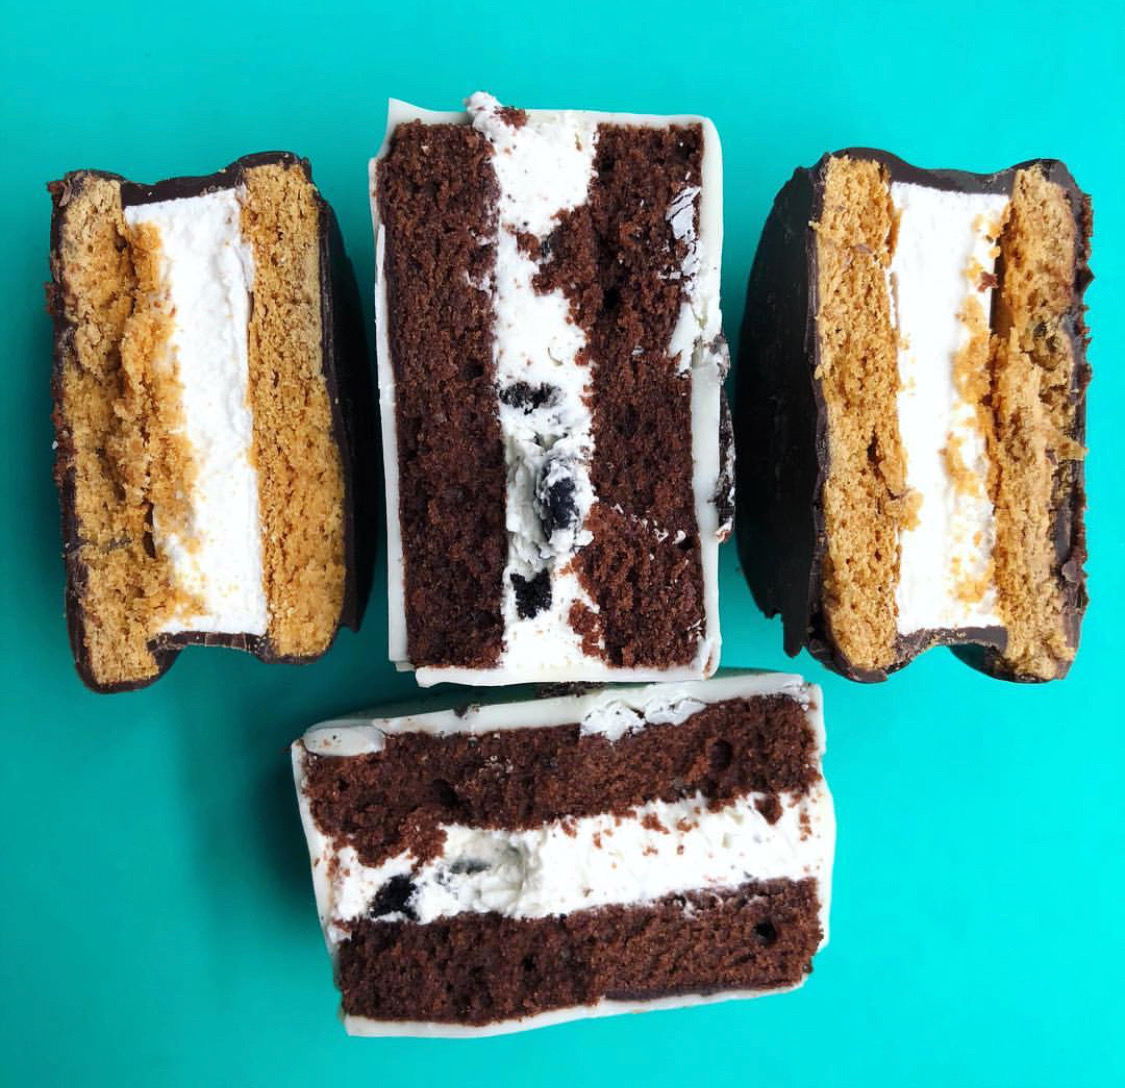 A selection Ring Dings via @ringdingbar